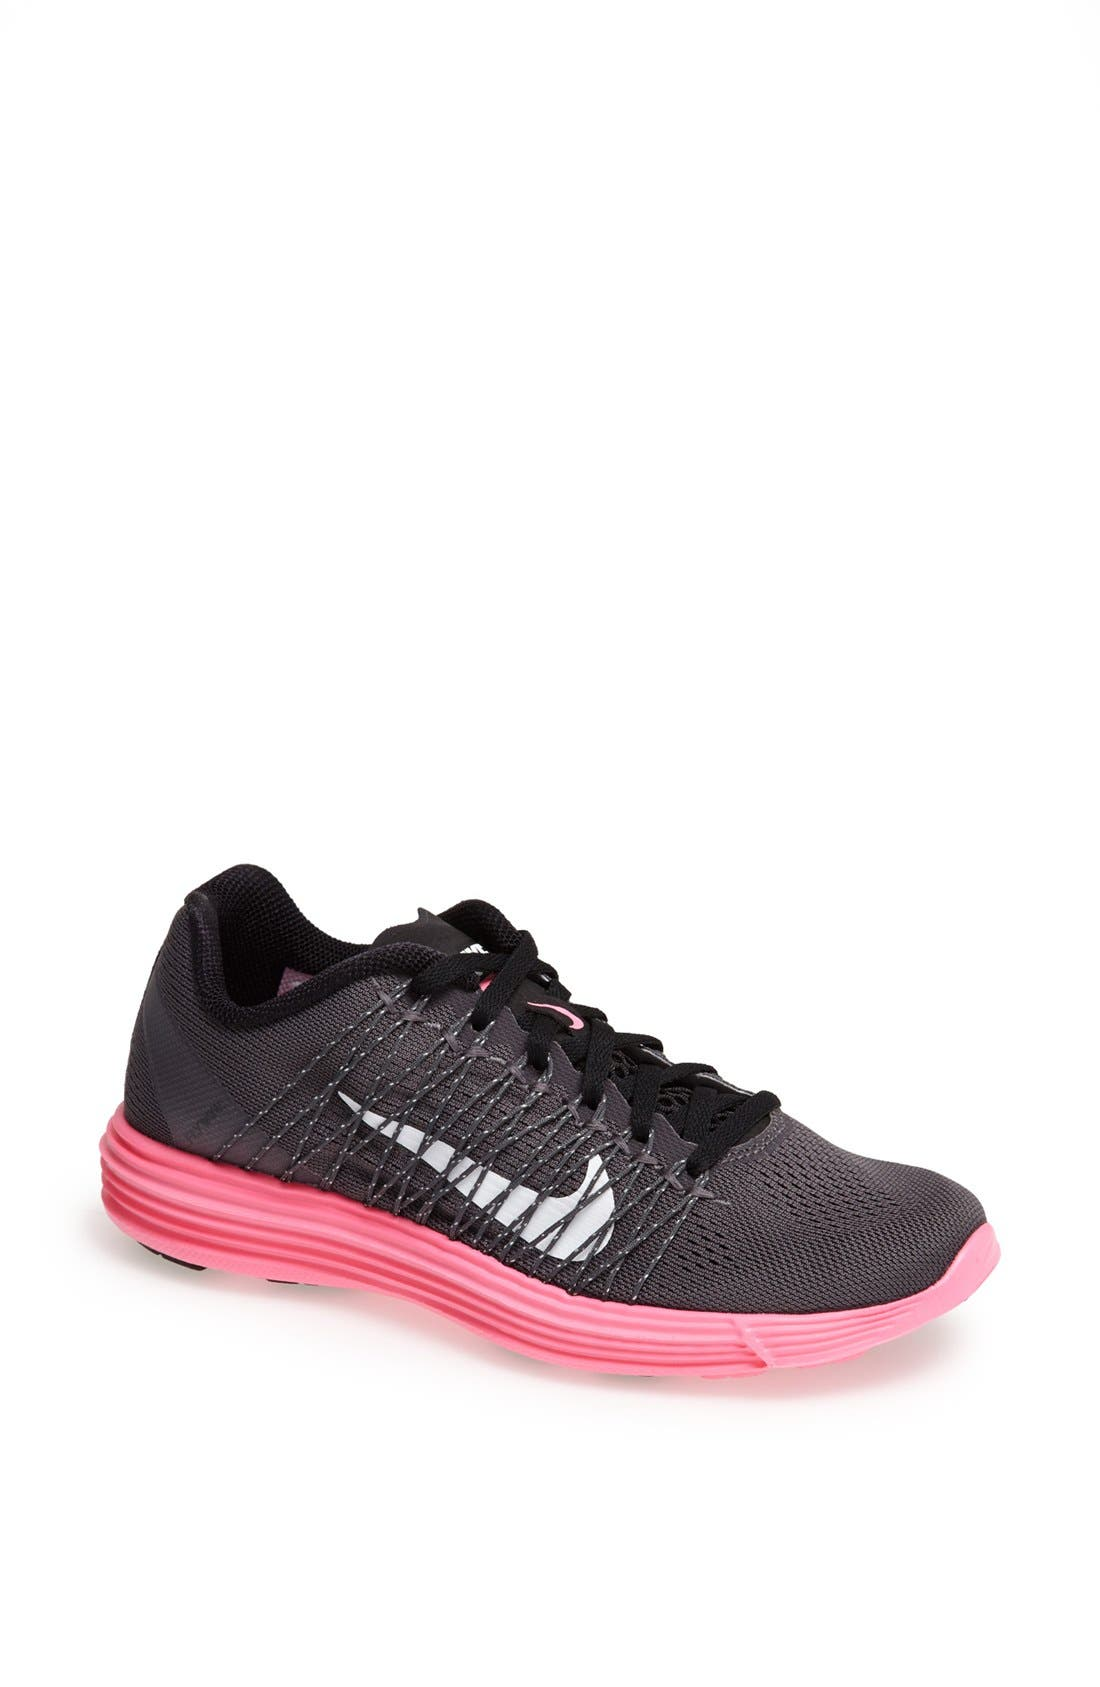 'Lunaracer+ 3' Running Shoe,                             Main thumbnail 1, color,                             016